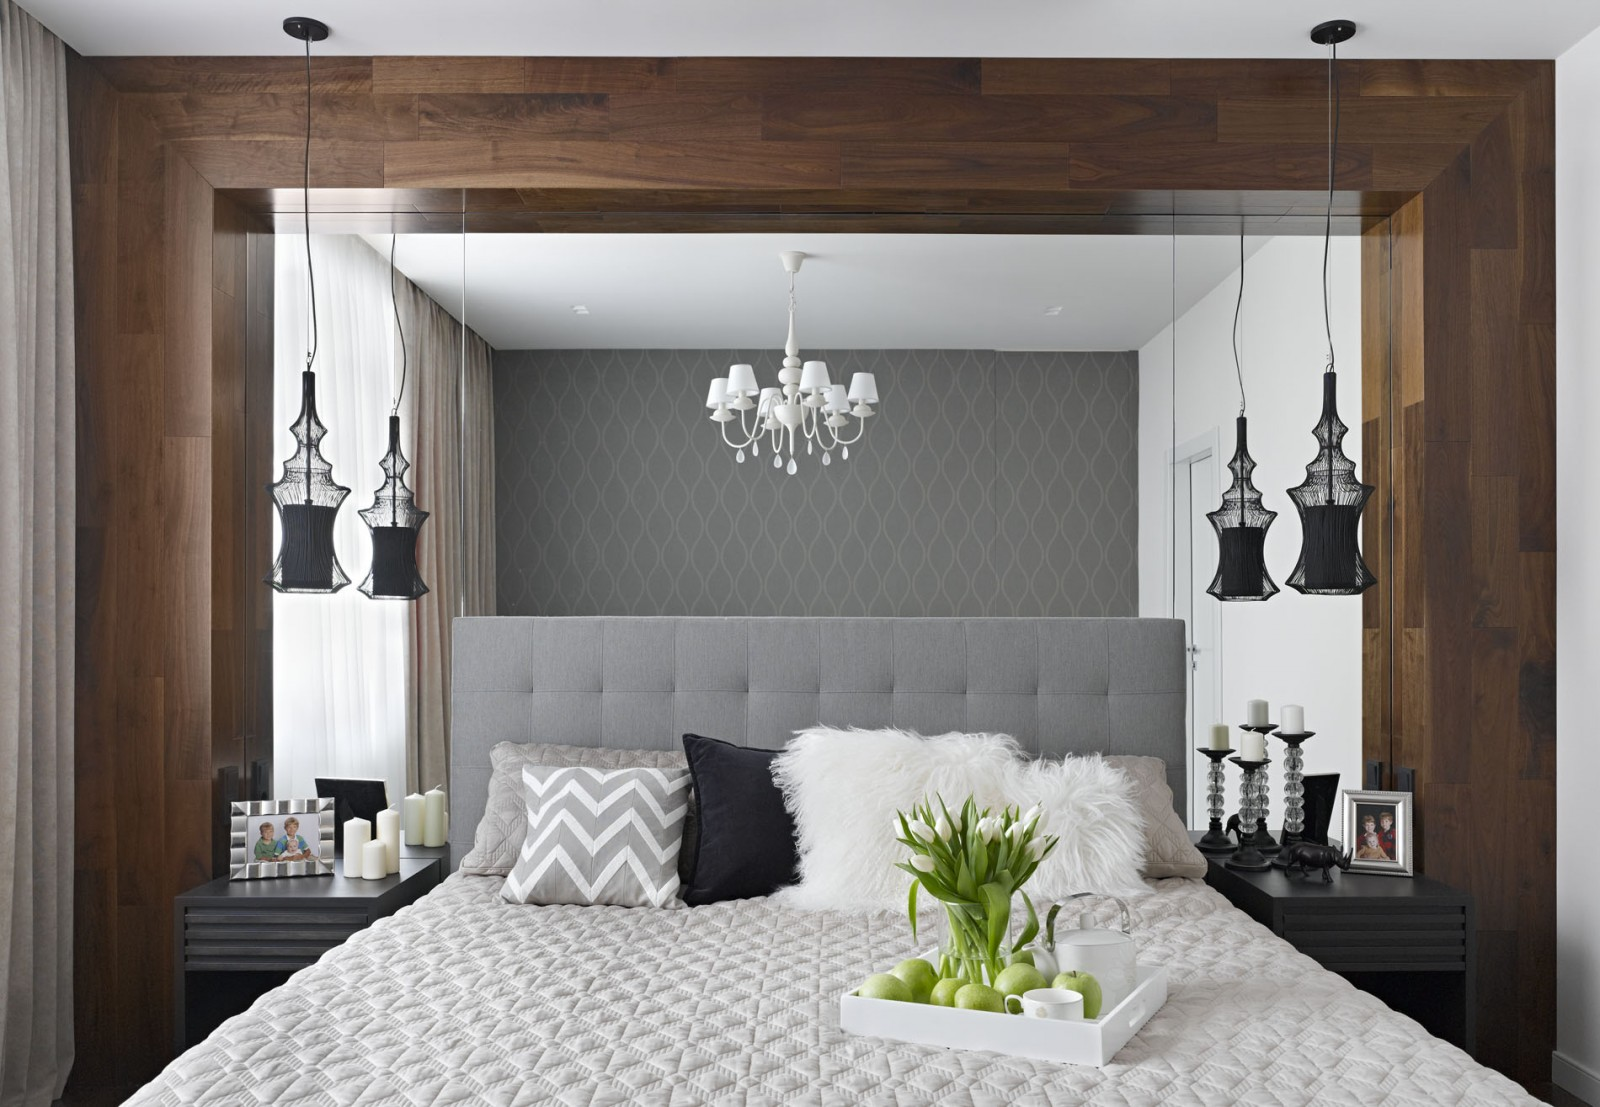 amazing bedroom ideas from alexandra fedorova - Small Room Interior Tips